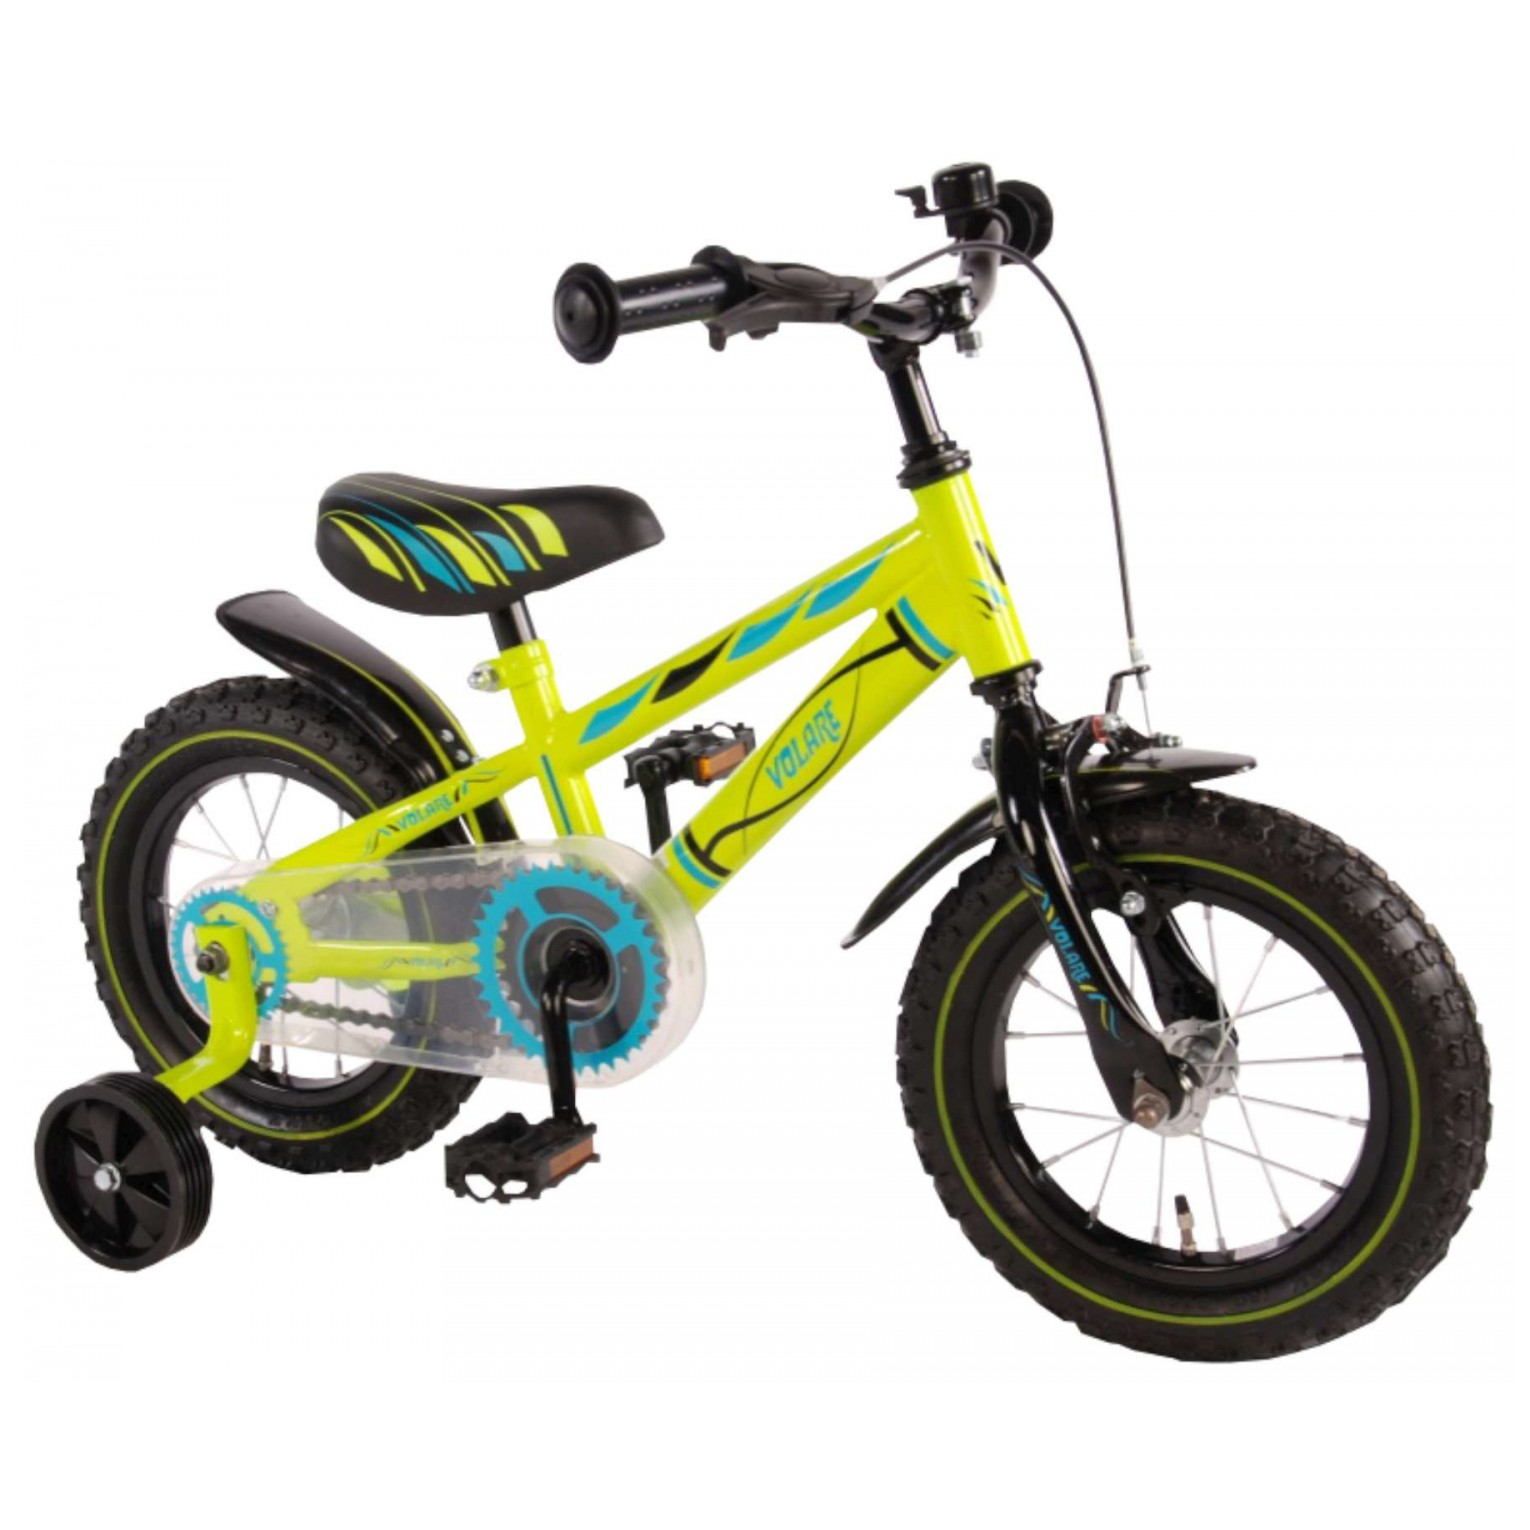 Volare Electric Green Fiets - 12 inch - Groen